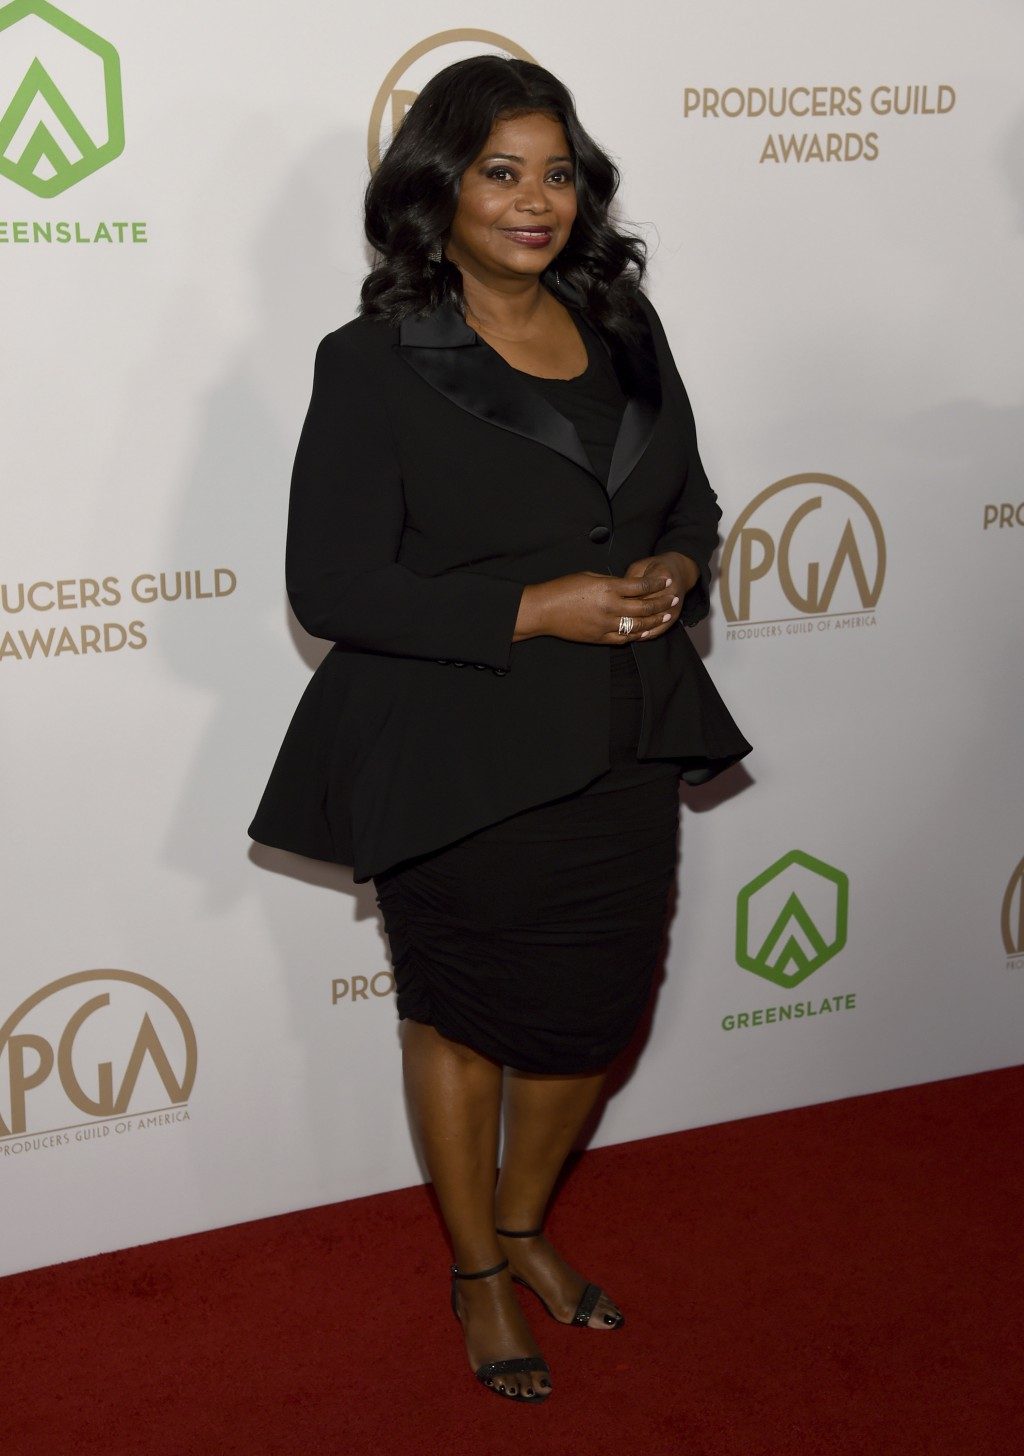 Octavia Spencer arrives at the 2020 Producers Guild Awards at the Hollywood Palladium on Saturday, Jan. 18, 2020, in Los Angeles, Calif. (AP Photo/Chr...